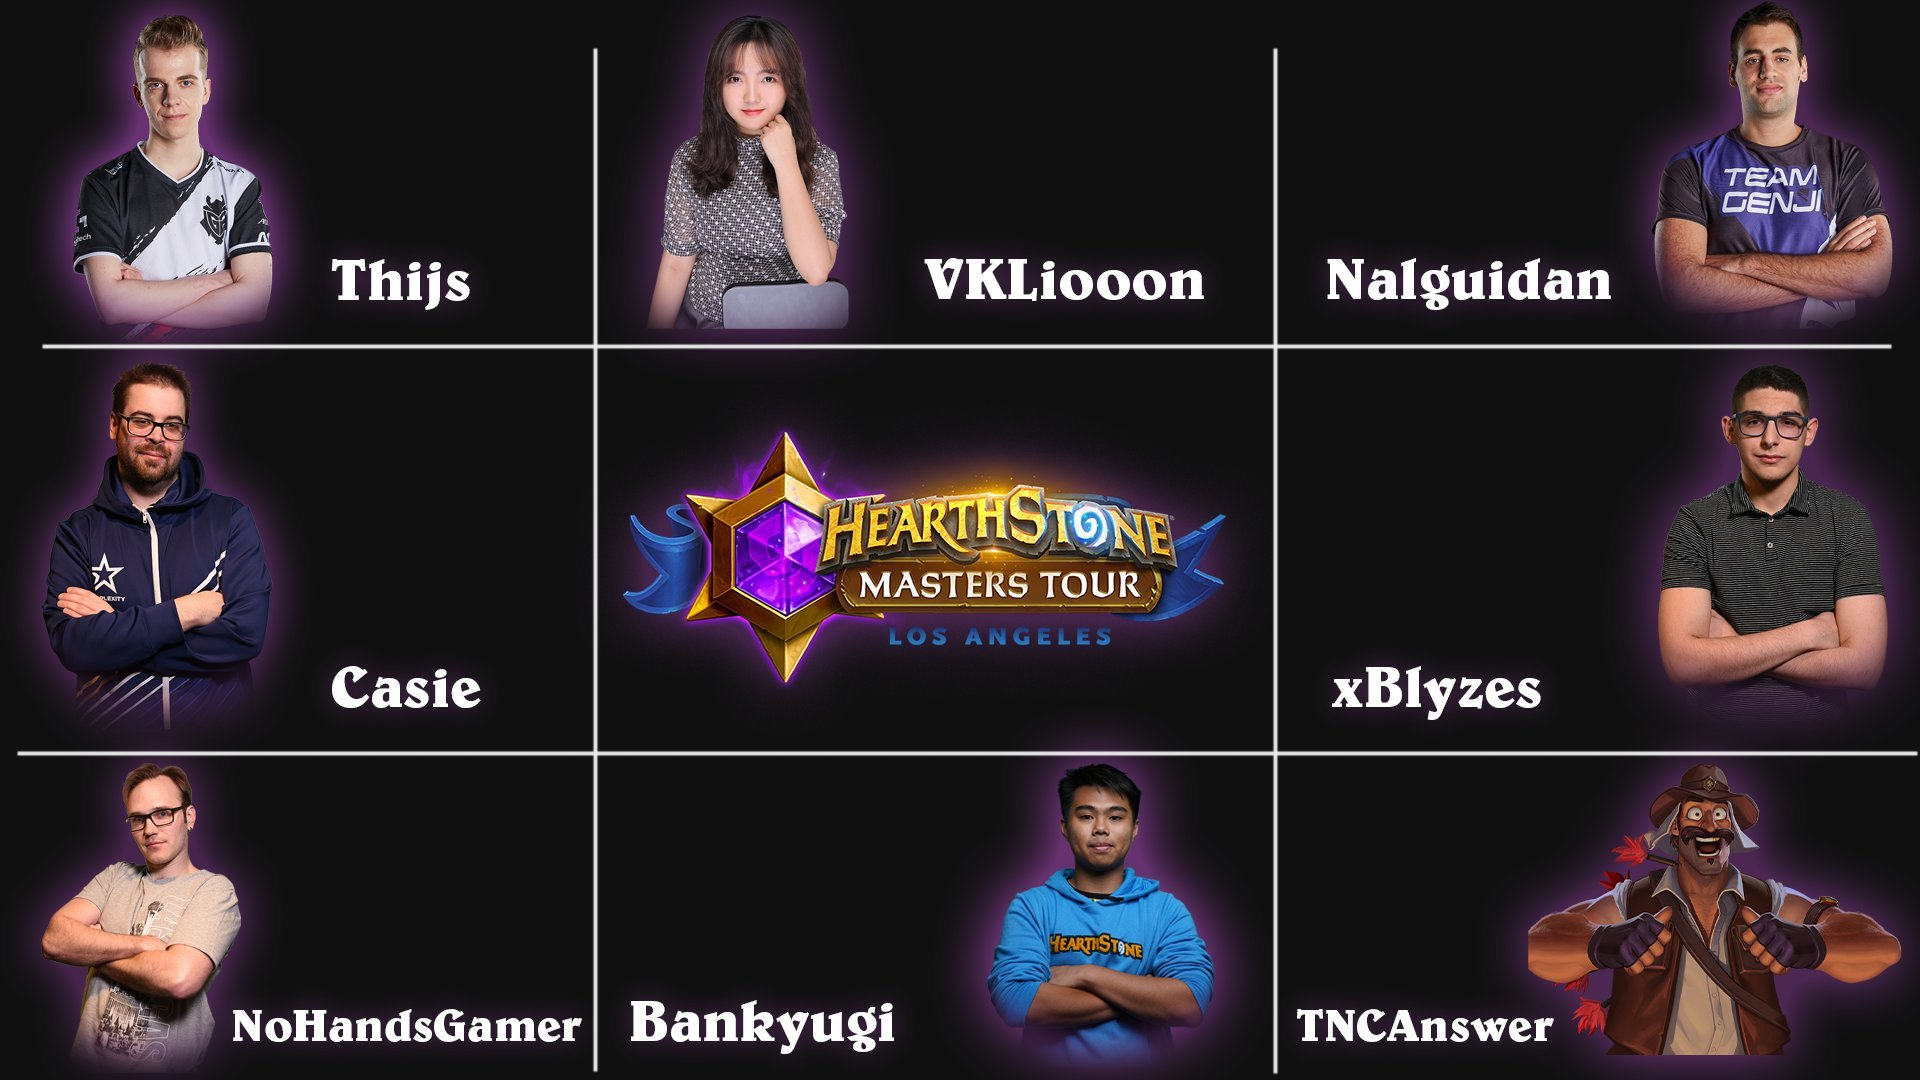 Top 8 Masters Tour Los Angeles - Hearthstone